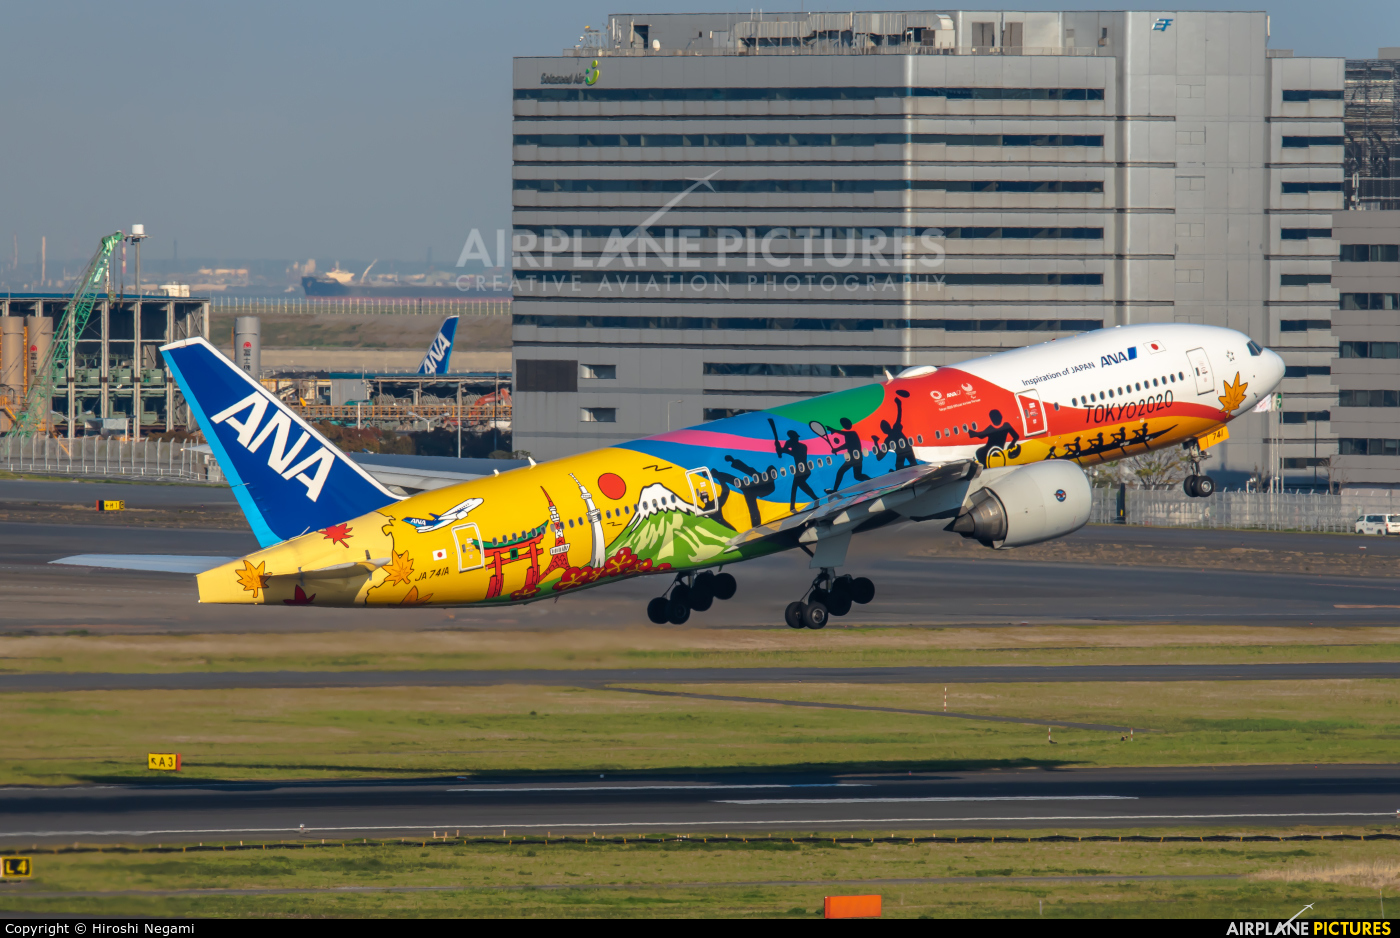 ANA - All Nippon Airways JA741A aircraft at Tokyo - Haneda Intl